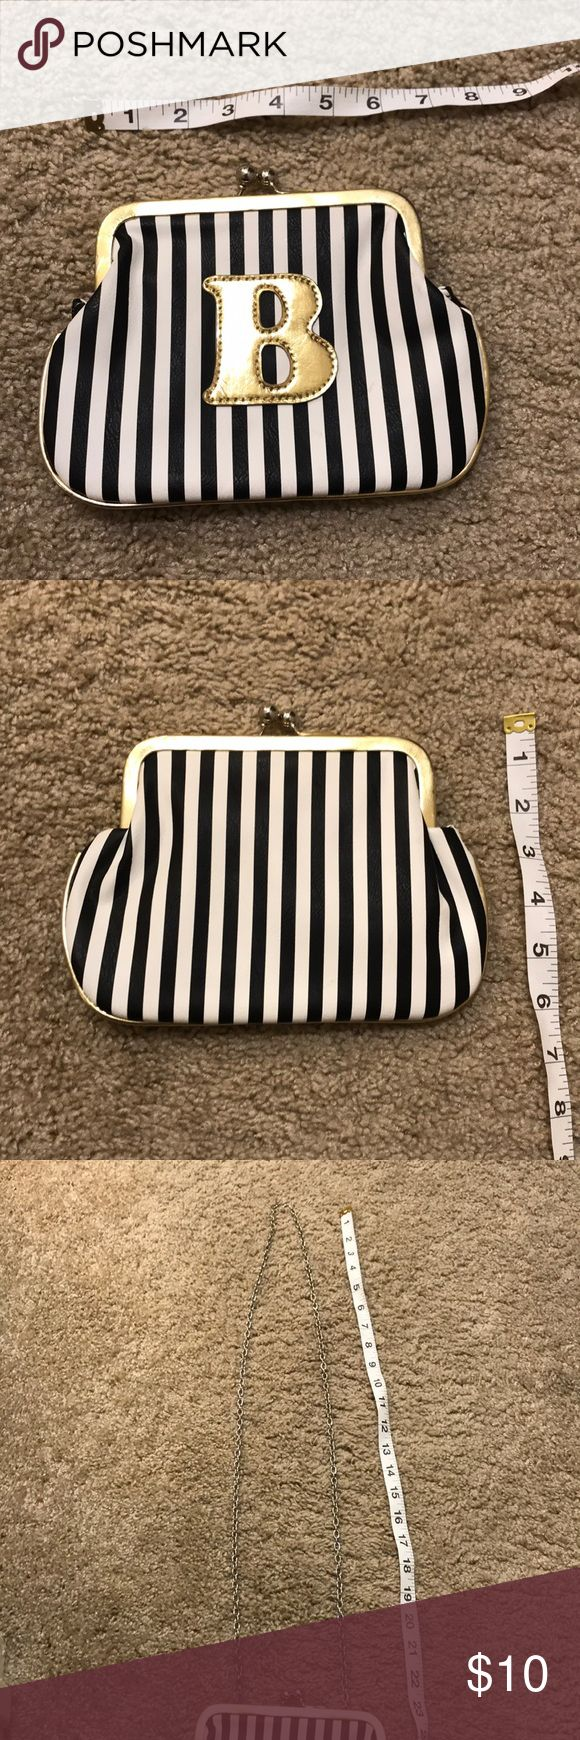 Melie Bianco striped letter B purse Never used, great condition! You can tuck the shoulder chain in or wear it :) Melie Bianco Bags Clutches & Wristlets